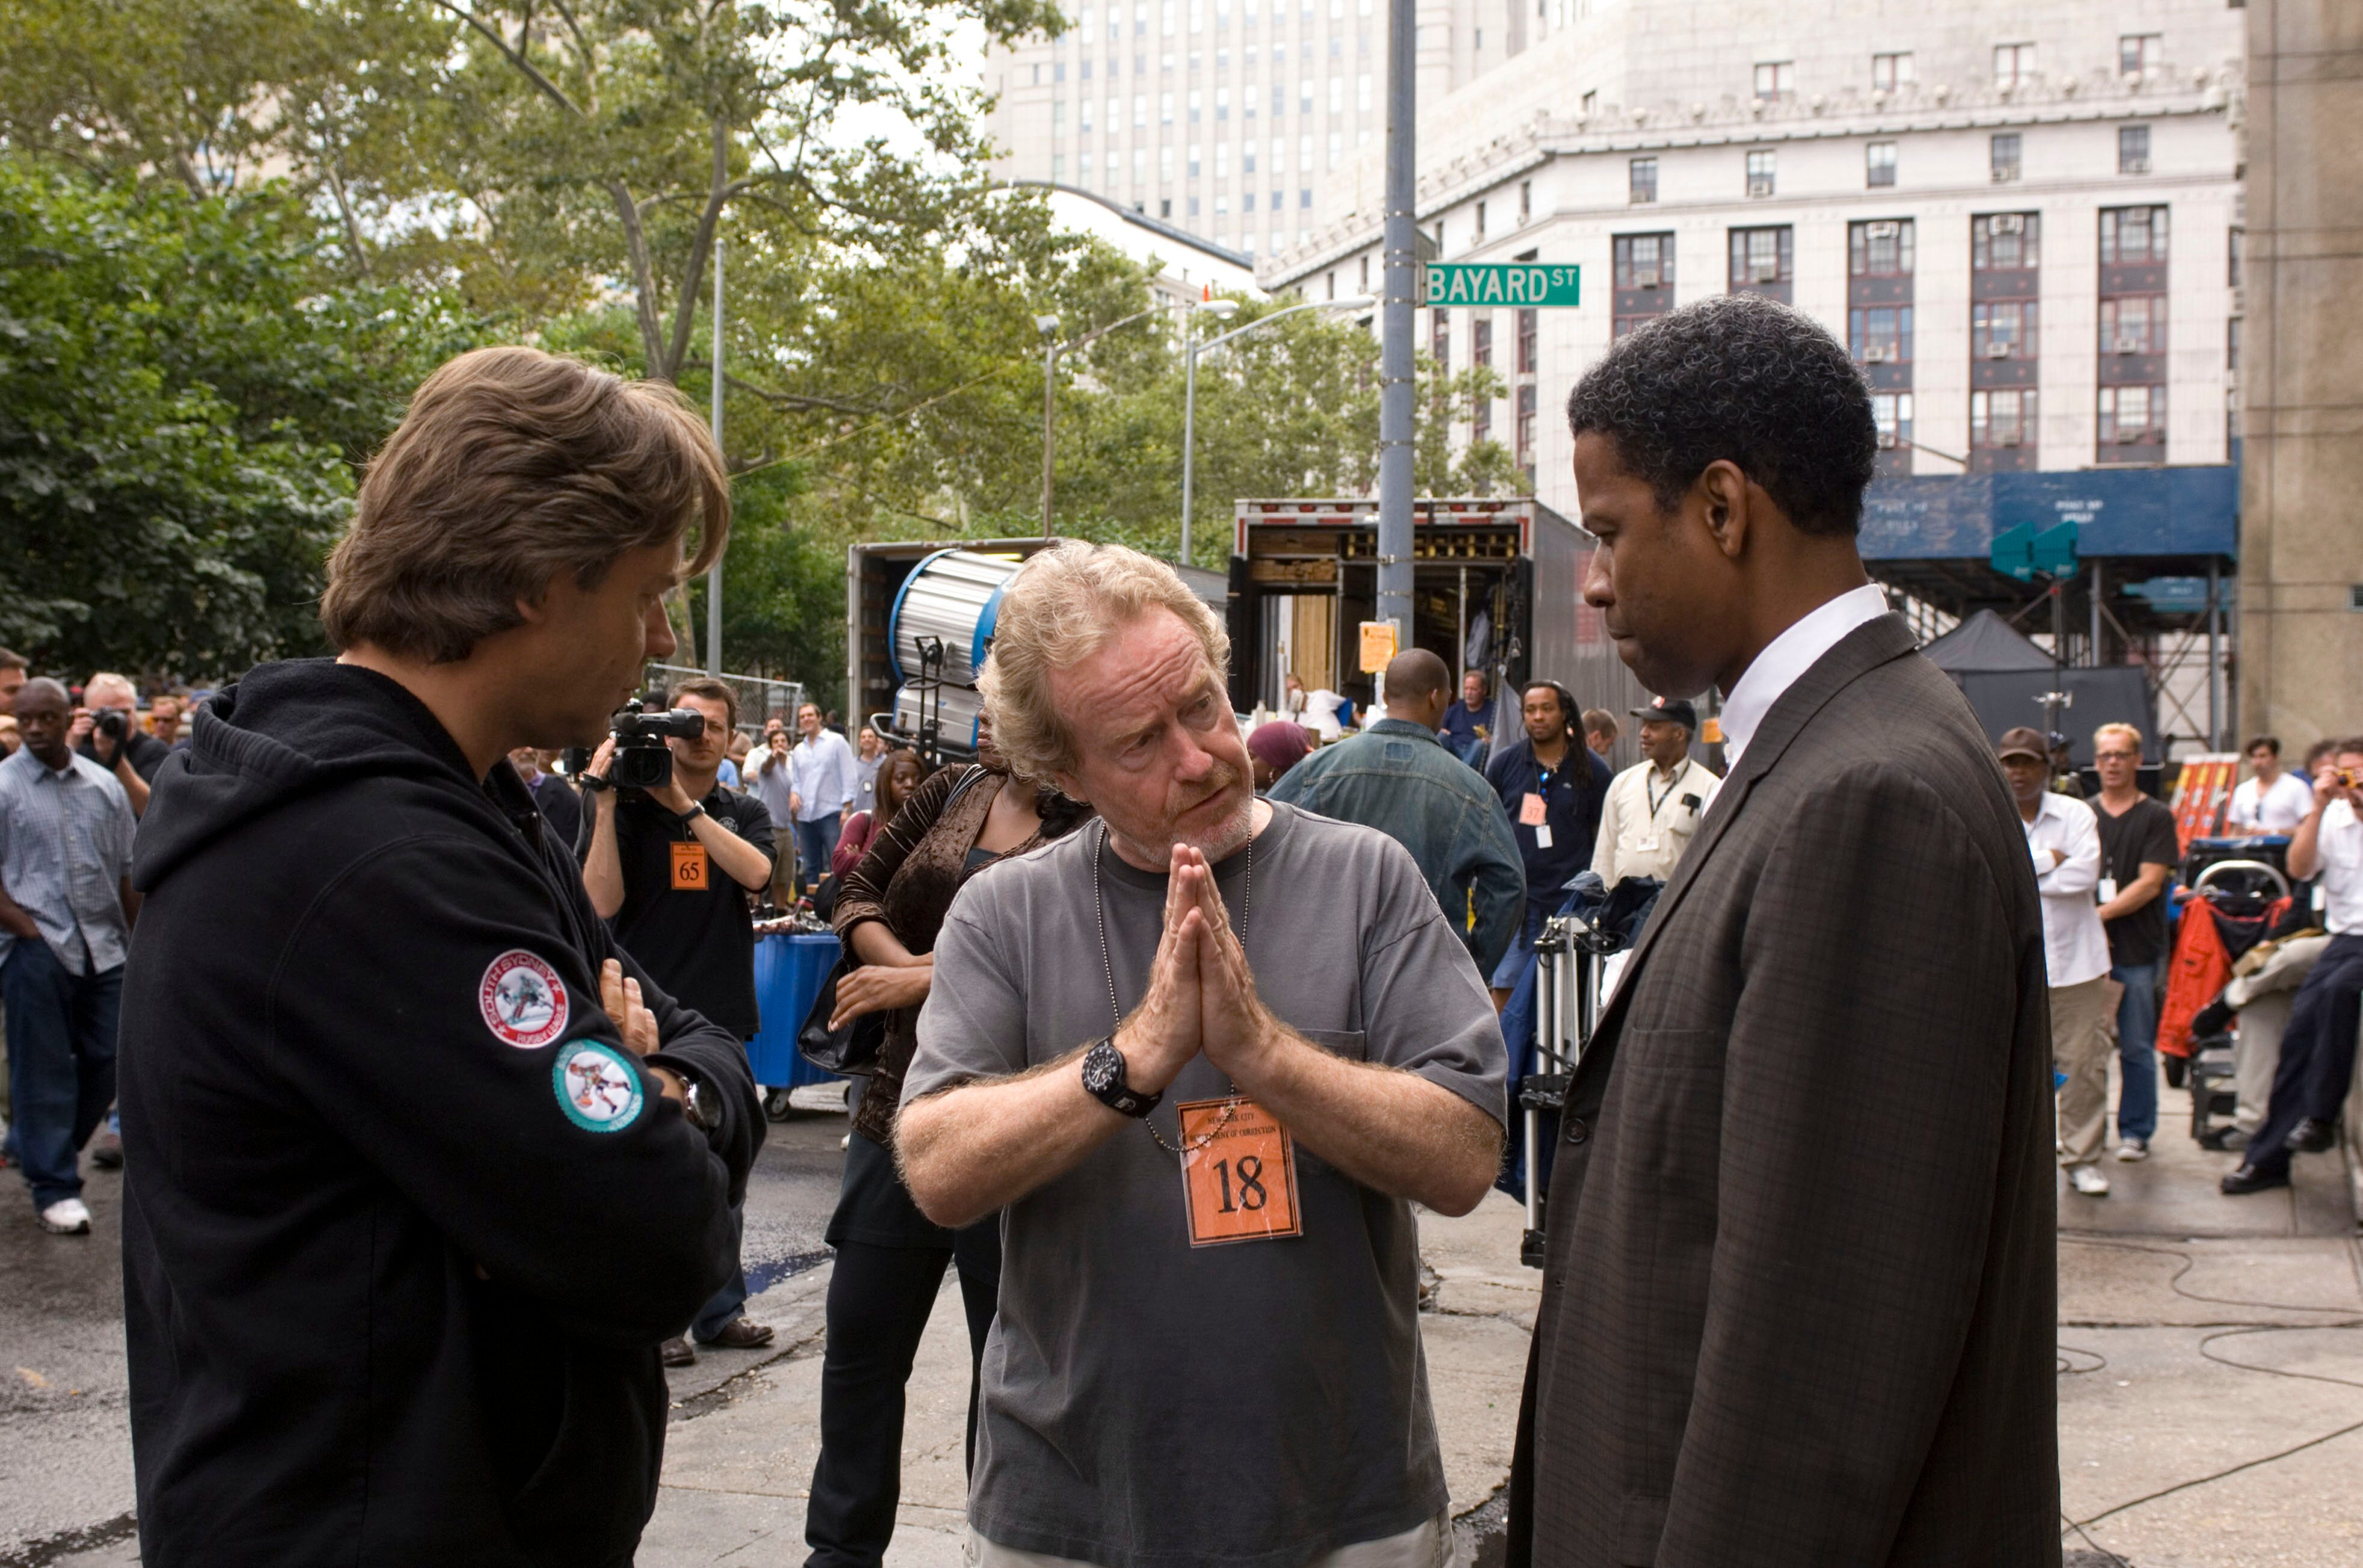 Russell Crowe, Ridley Scott and Denzel Washington